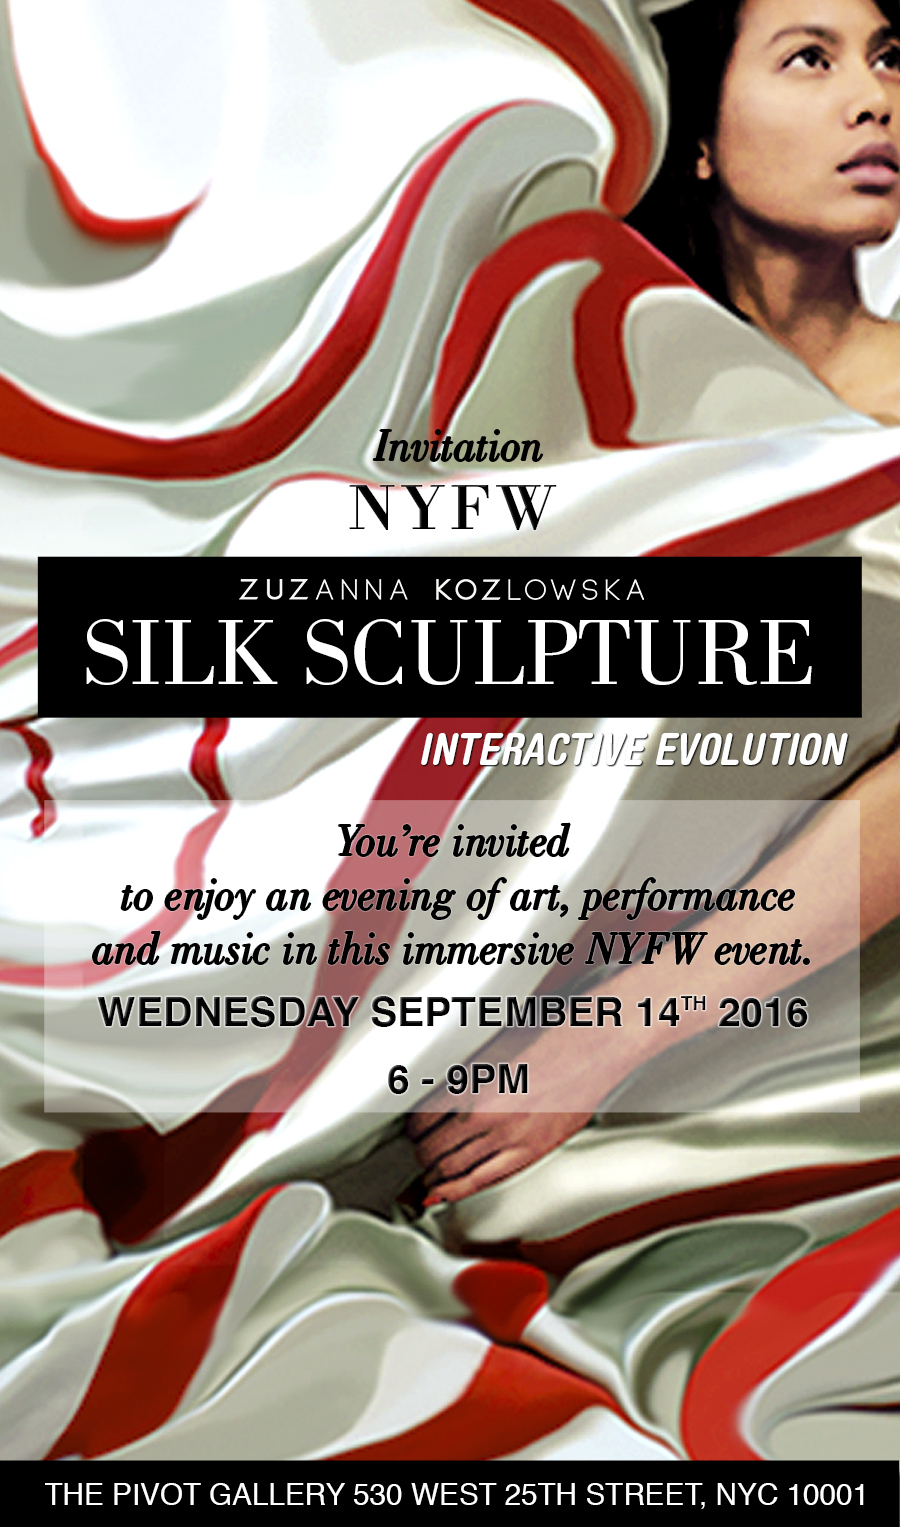 Pivot_gallery_inviation_Silk_sculpture.jpg